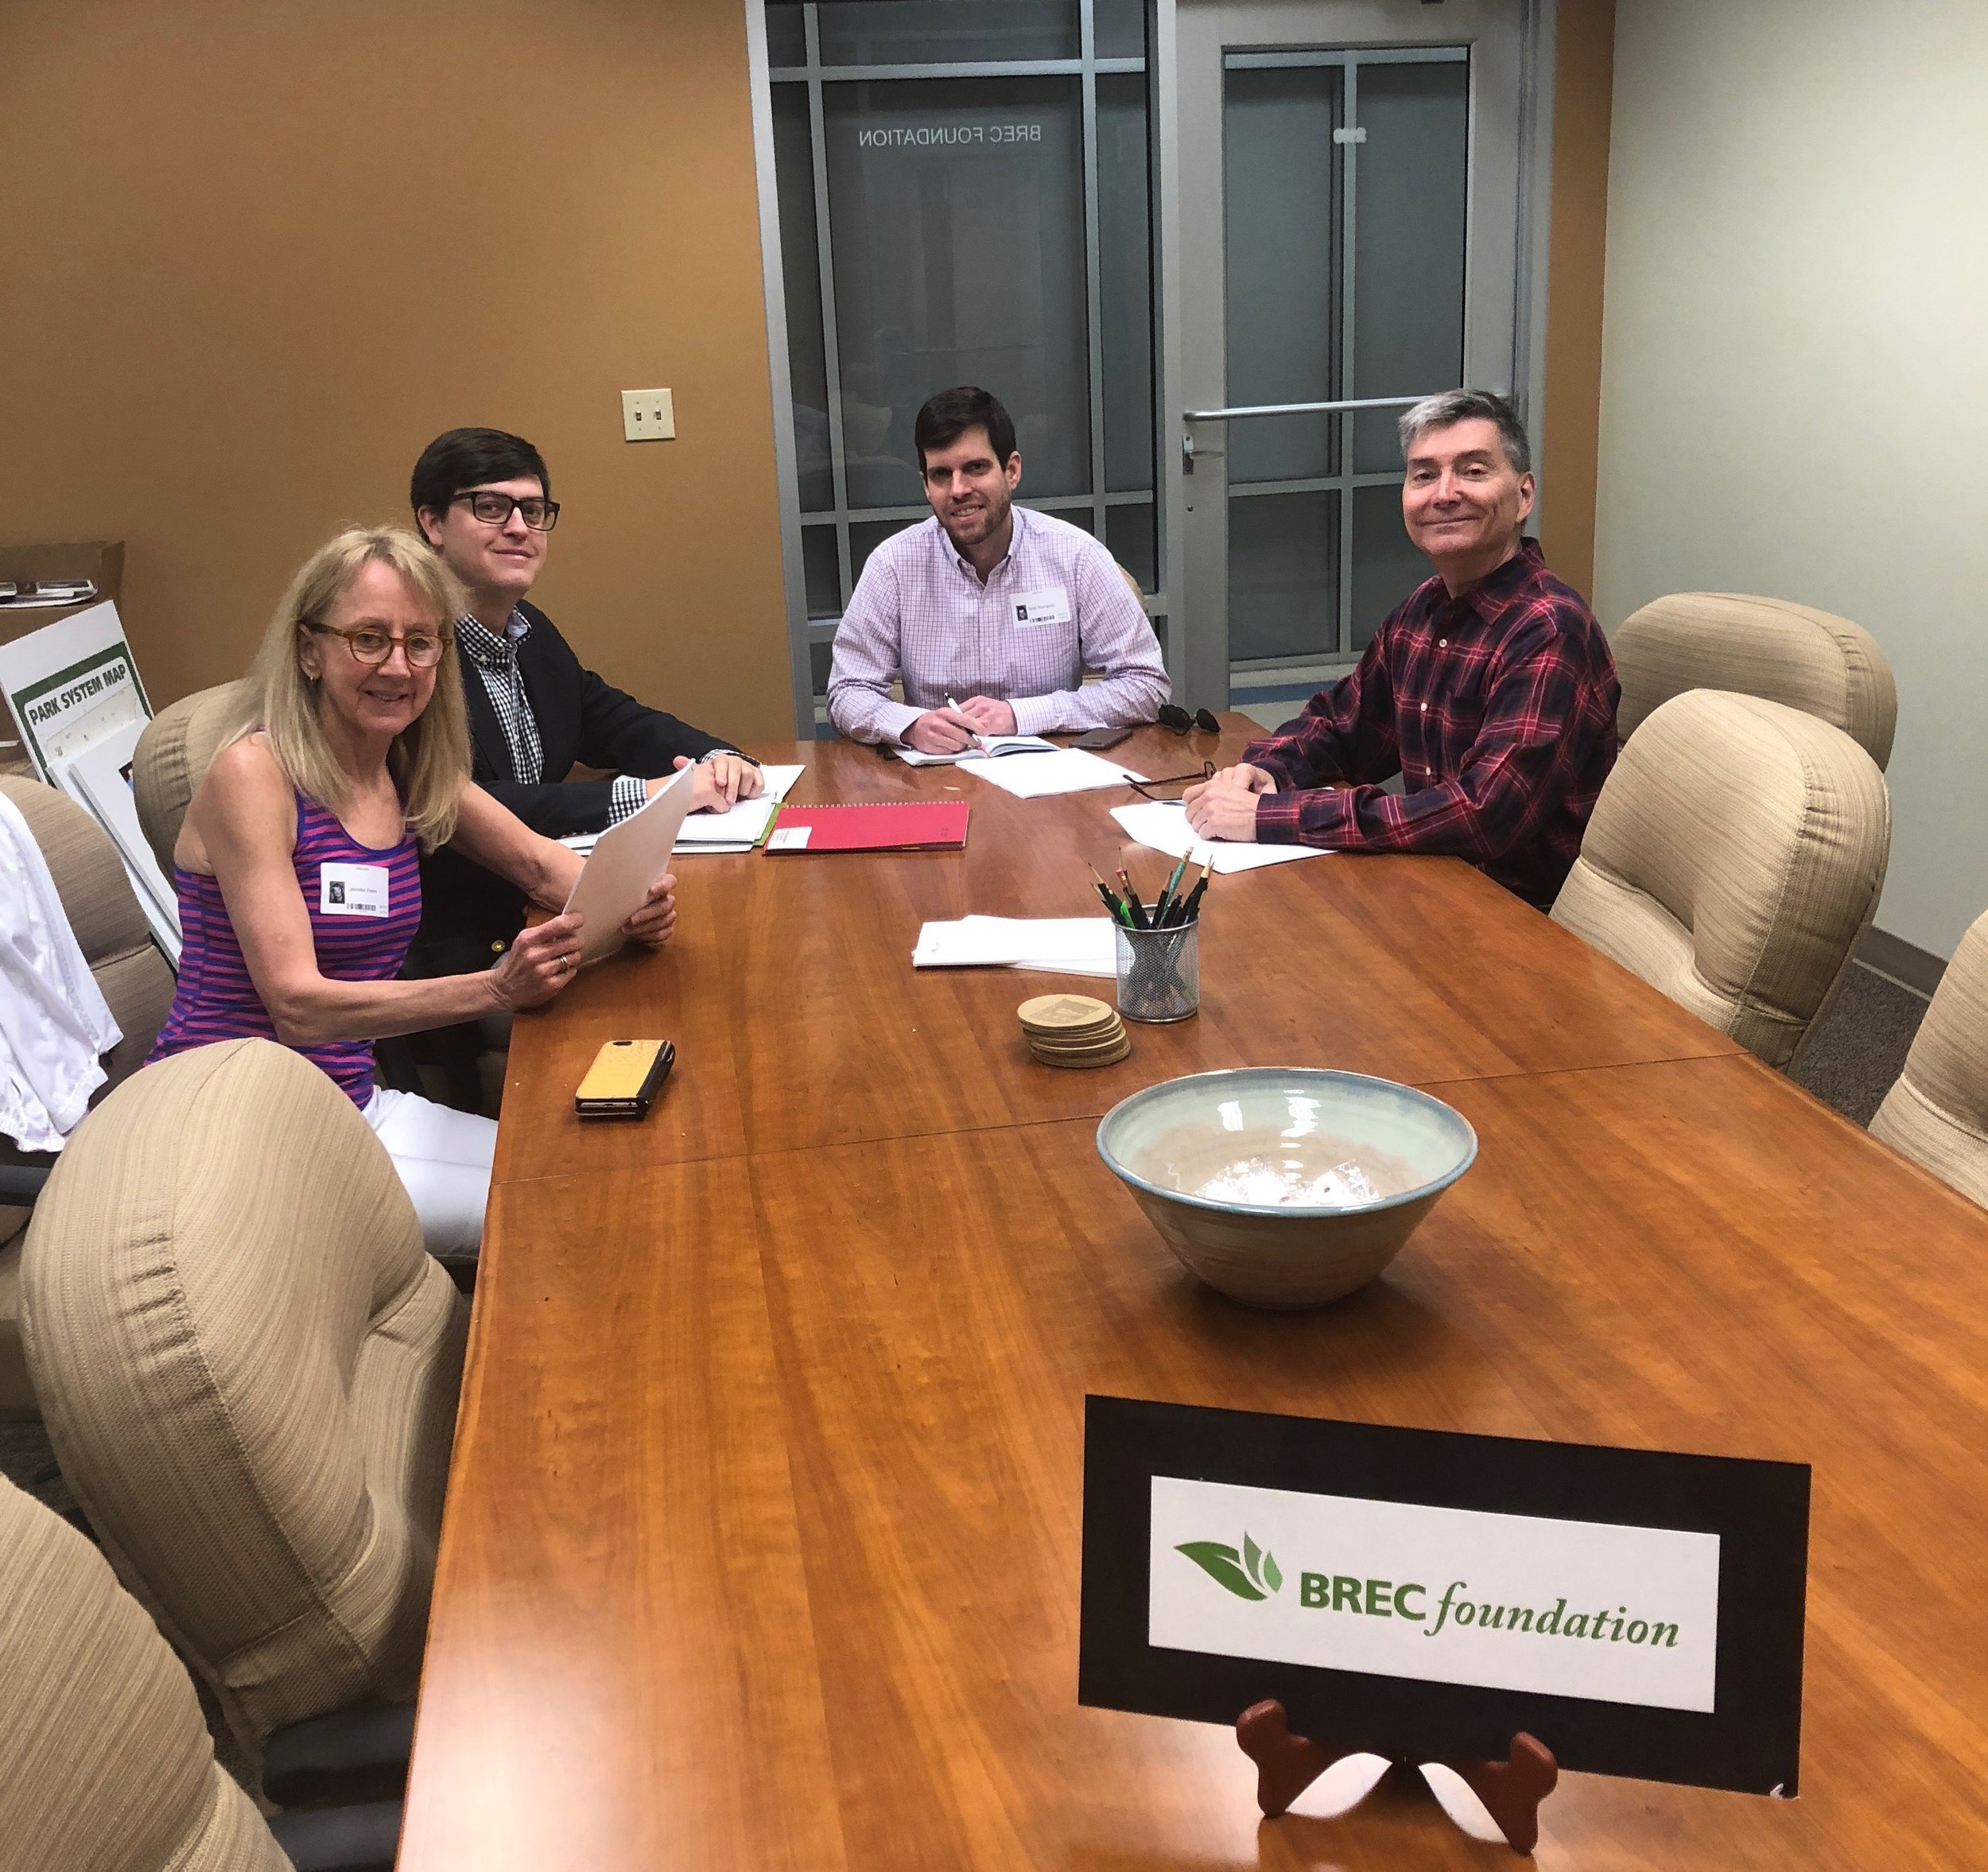 """""""The Public Relations Committee (Jenni Peters, Dixon McMakin, Brian Rodriguez and Carl Stages) met on February 27, 2018 to discuss marketing materials, committee membership, sponsorship guidelines and outreach."""""""